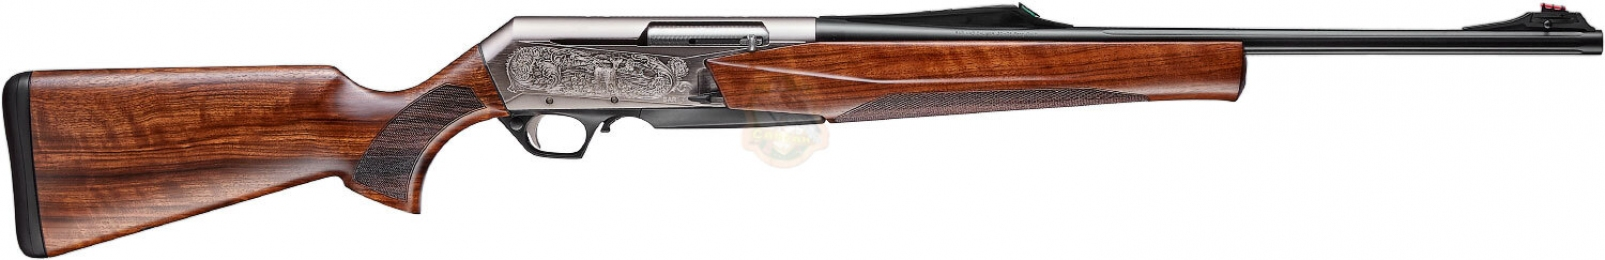 Карабин Browning BAR MK3 Eclipse Fluted кал. 30-06/MG4 DBM